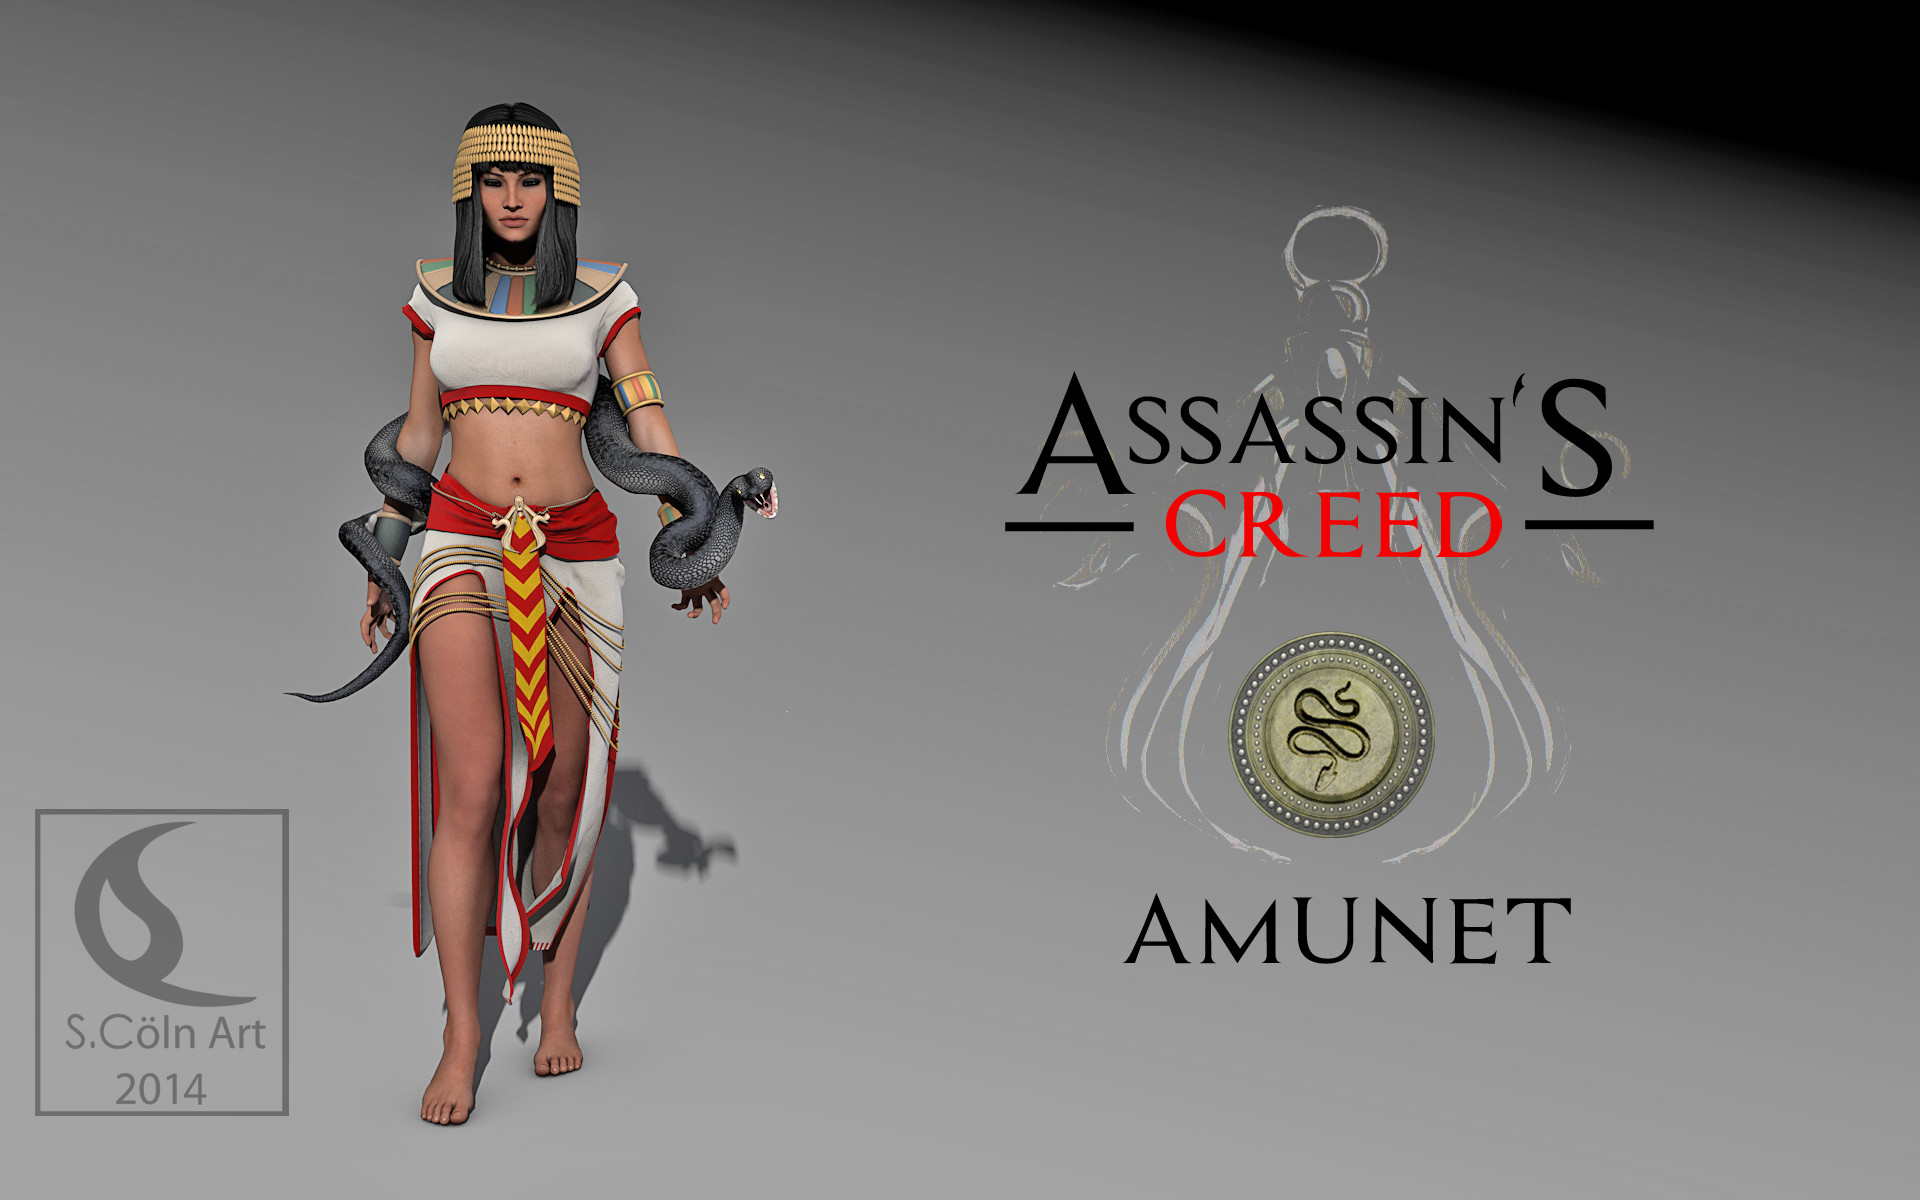 Assassin S Creed Amunet 2 By Yowan2008 On Deviantart